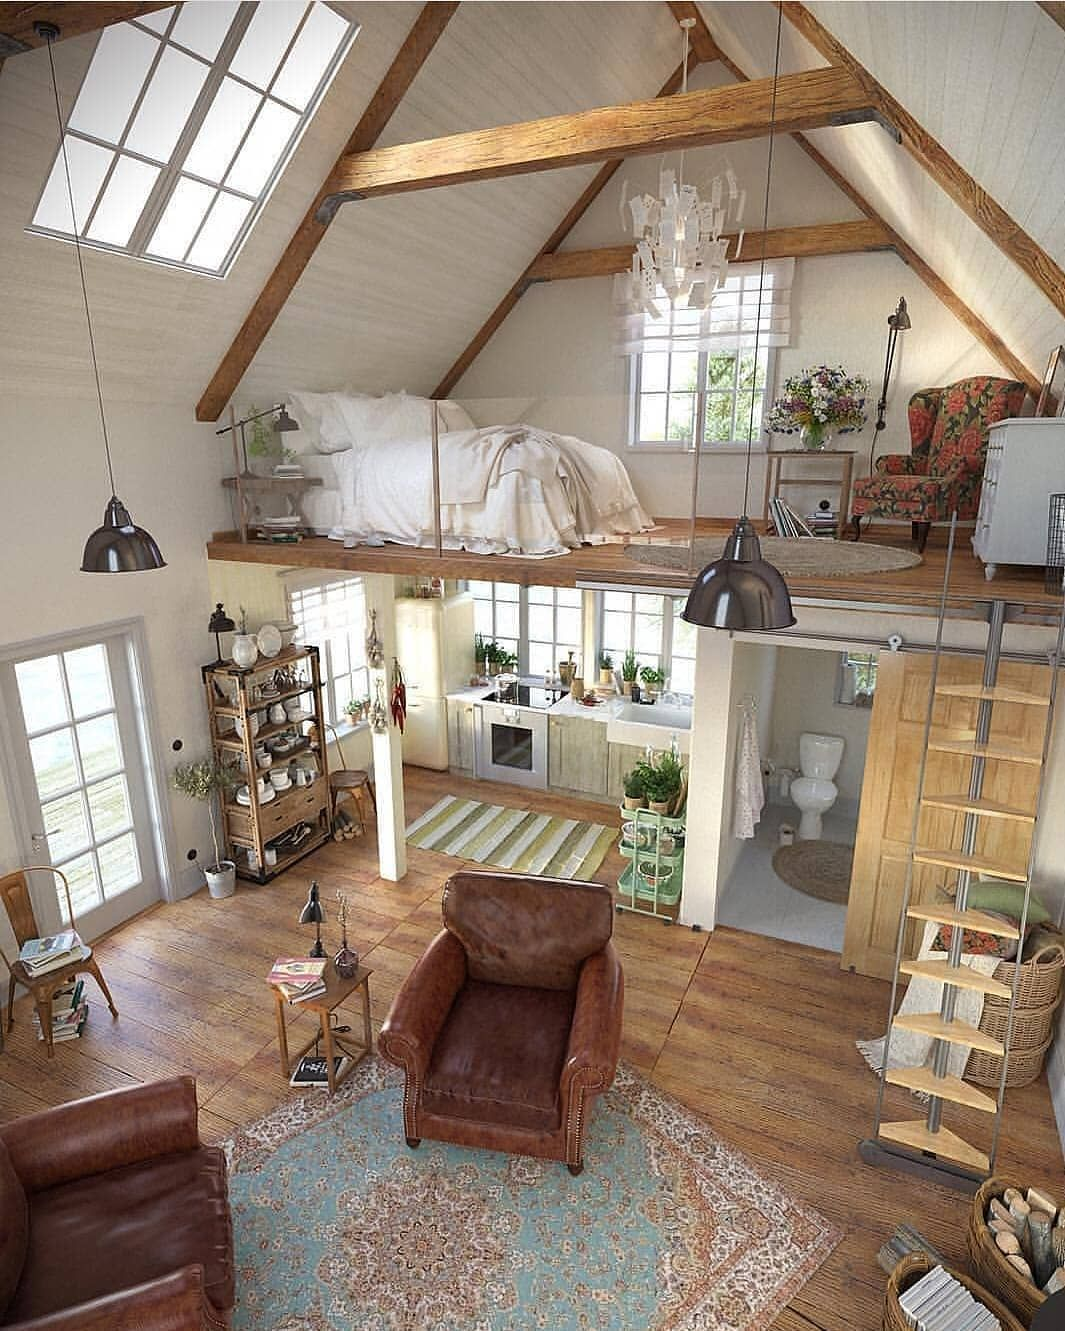 Tiny House Hunter On Instagram This Tiny Home Is Gorgeous We Love All The Light And The Open Floor Plan What Do You Think Co Tiny House Design